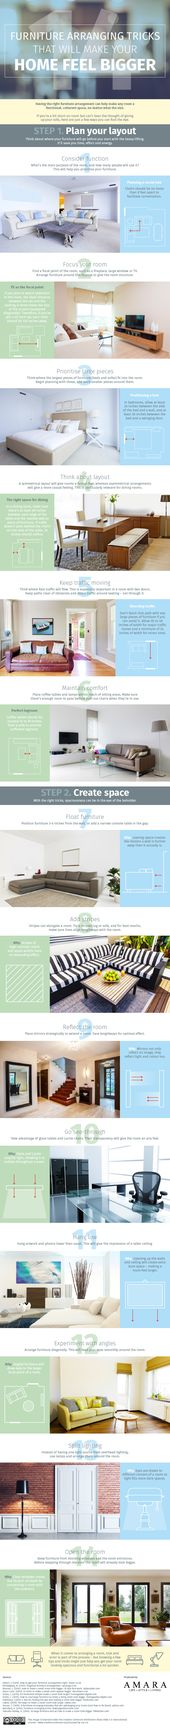 14 Furniture Arranging Tricks that Will Make your Home Feel Bigger #infographic   – Home decoration